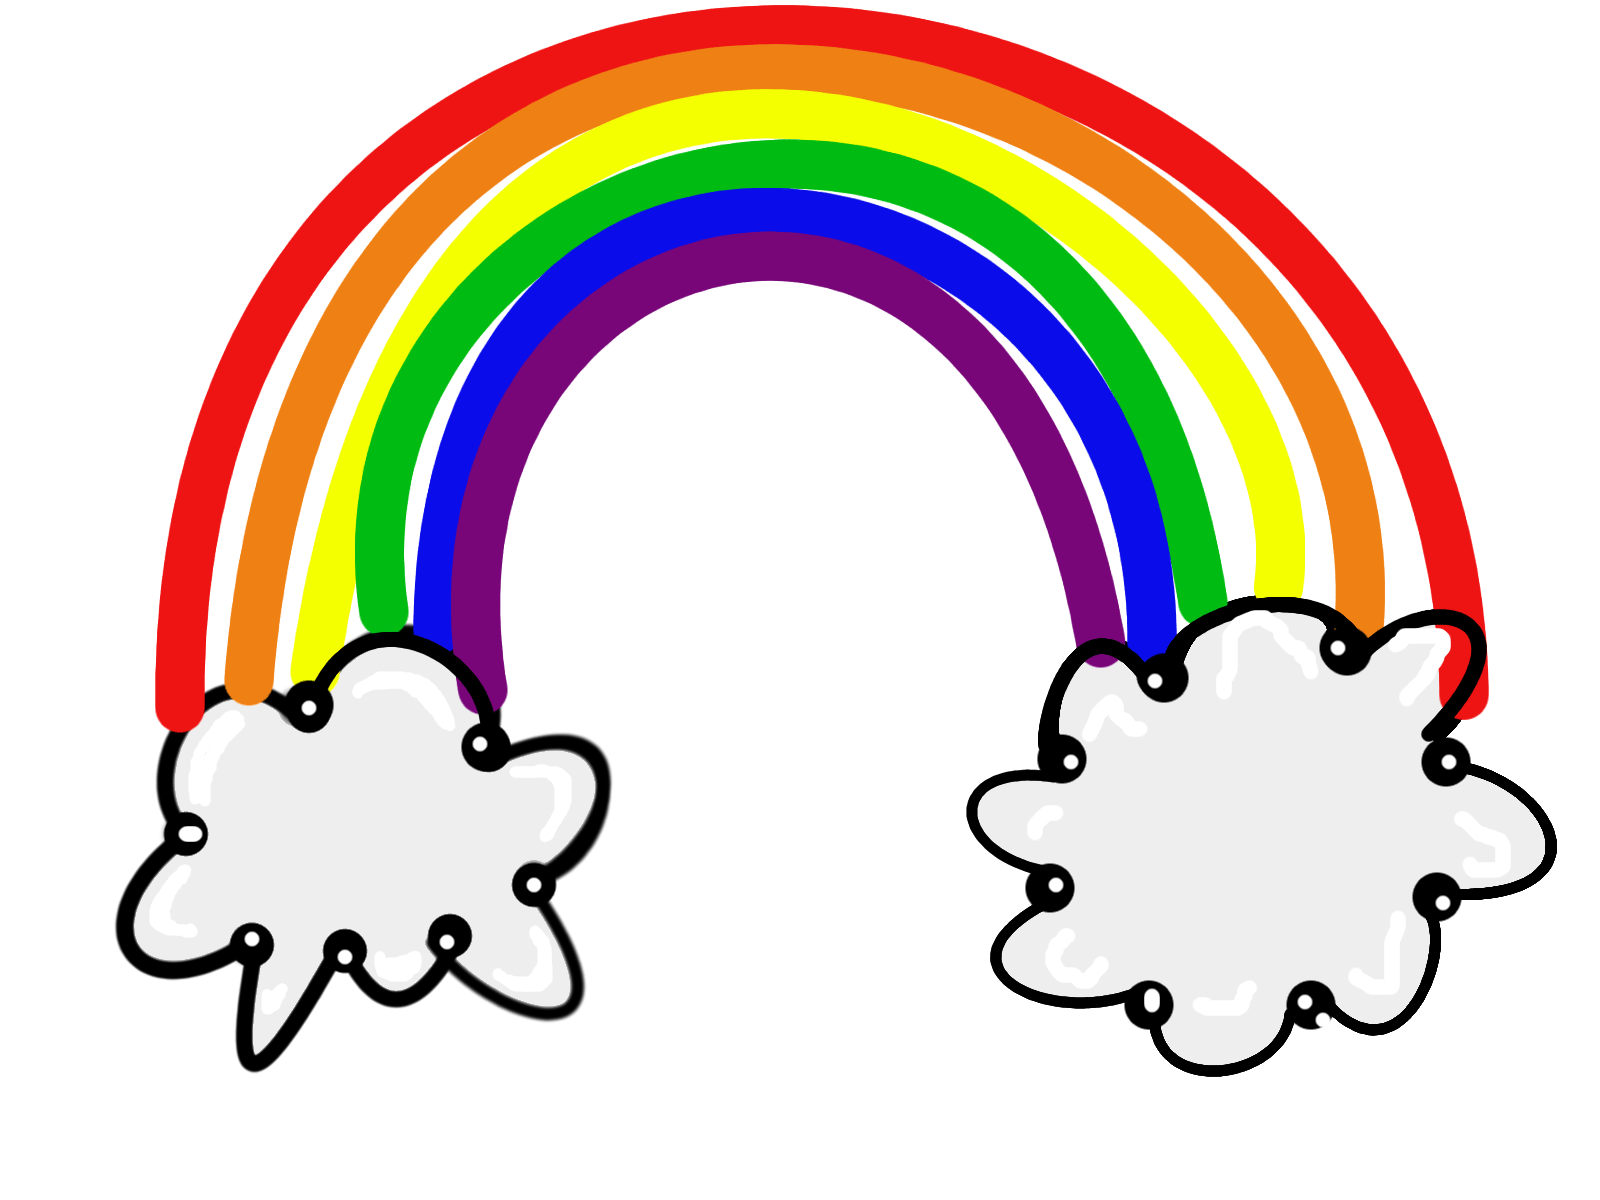 hight resolution of rainbow clipart for kids